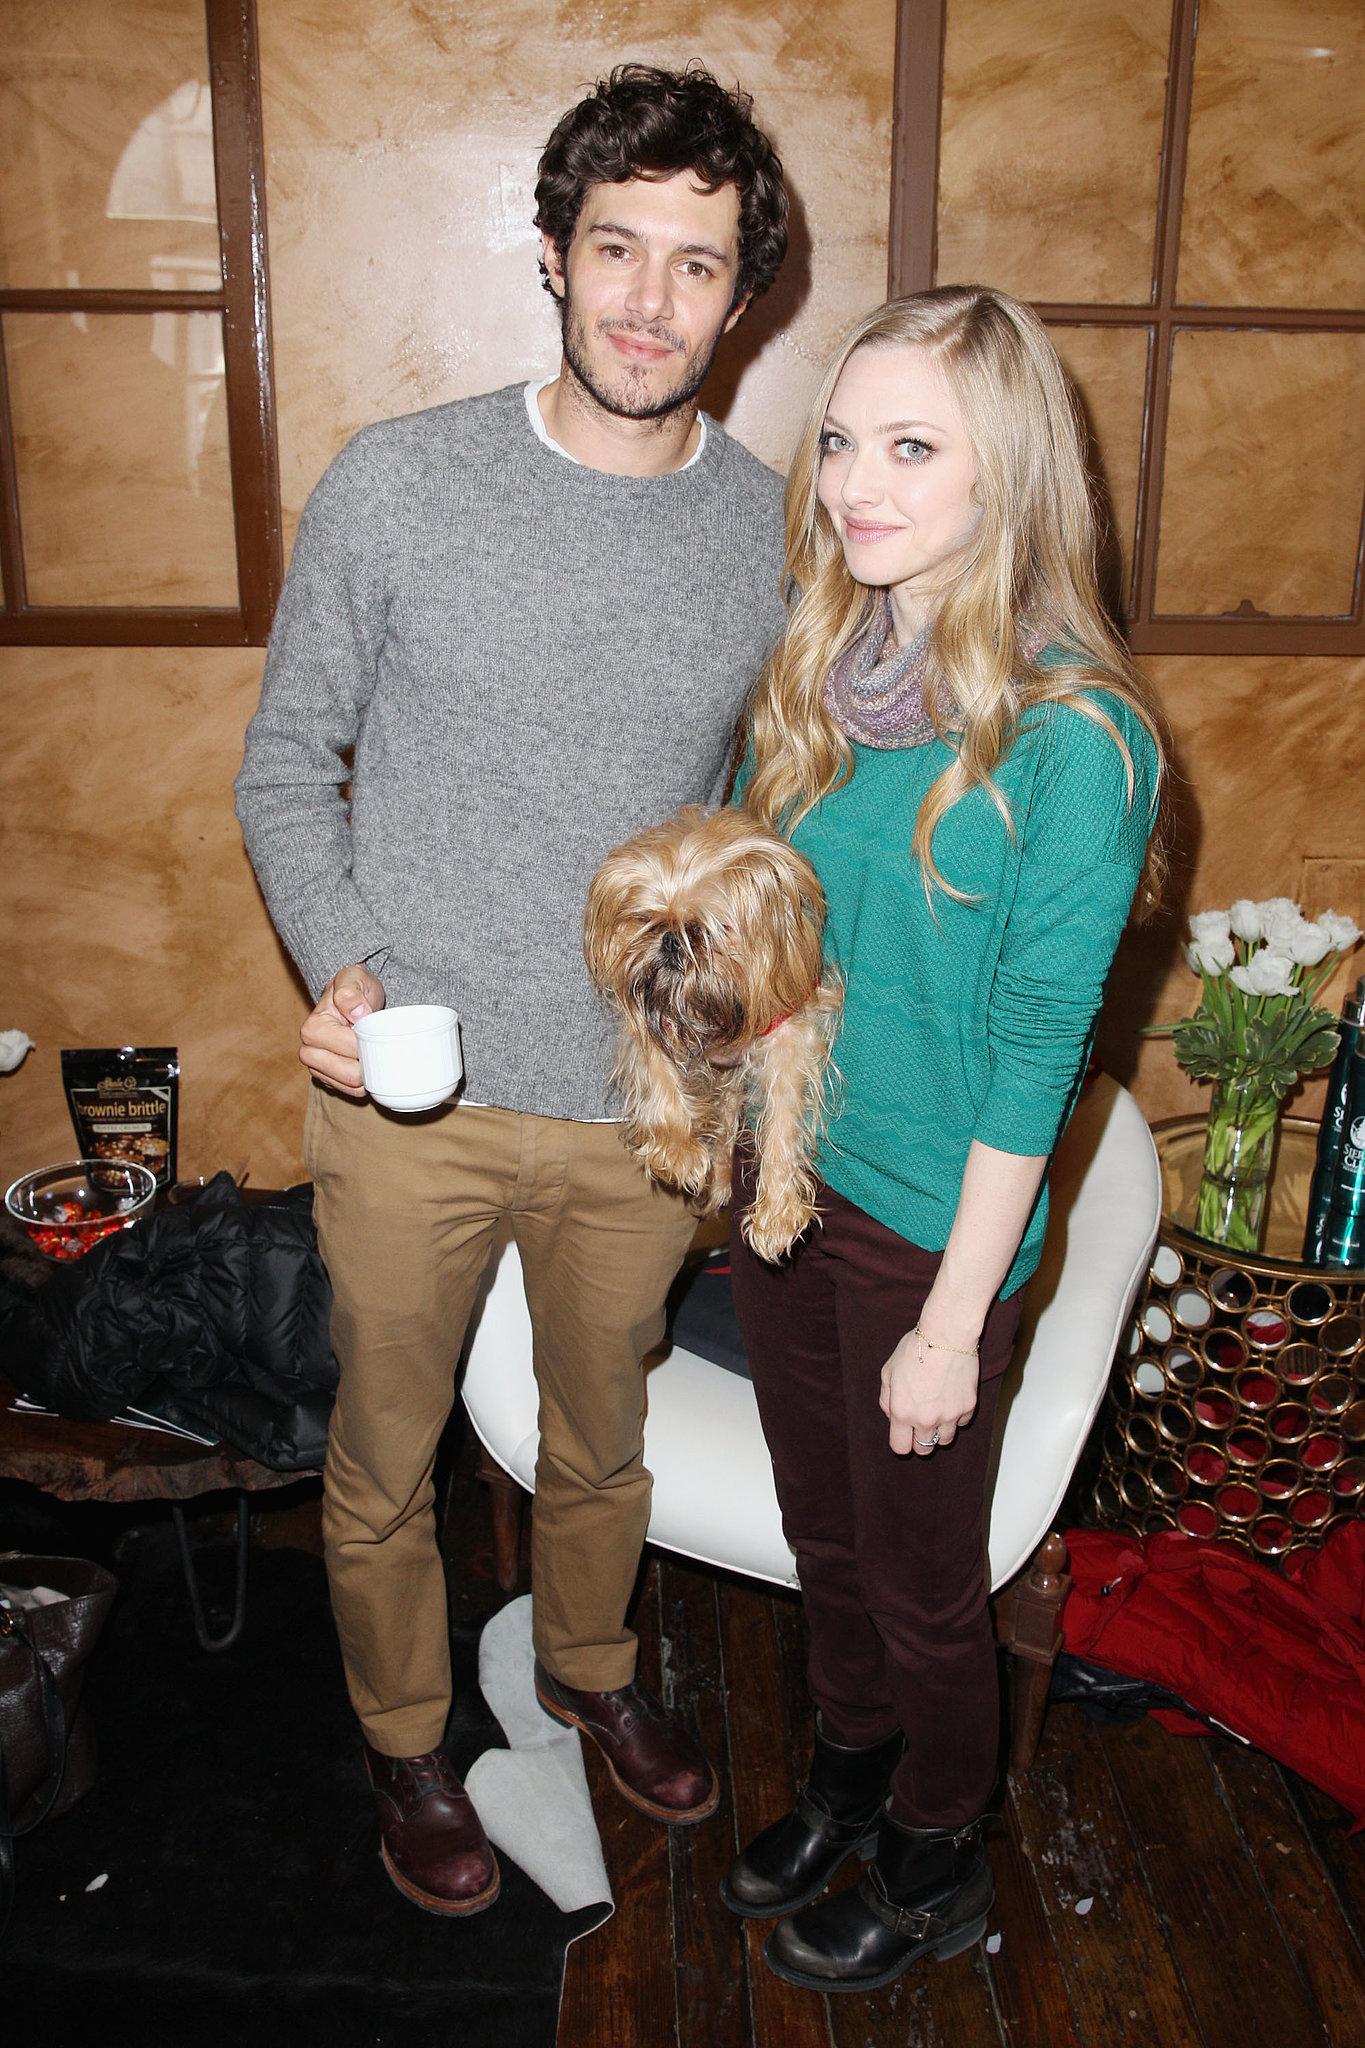 Adam Brody and Amanda Seyfried posed with an